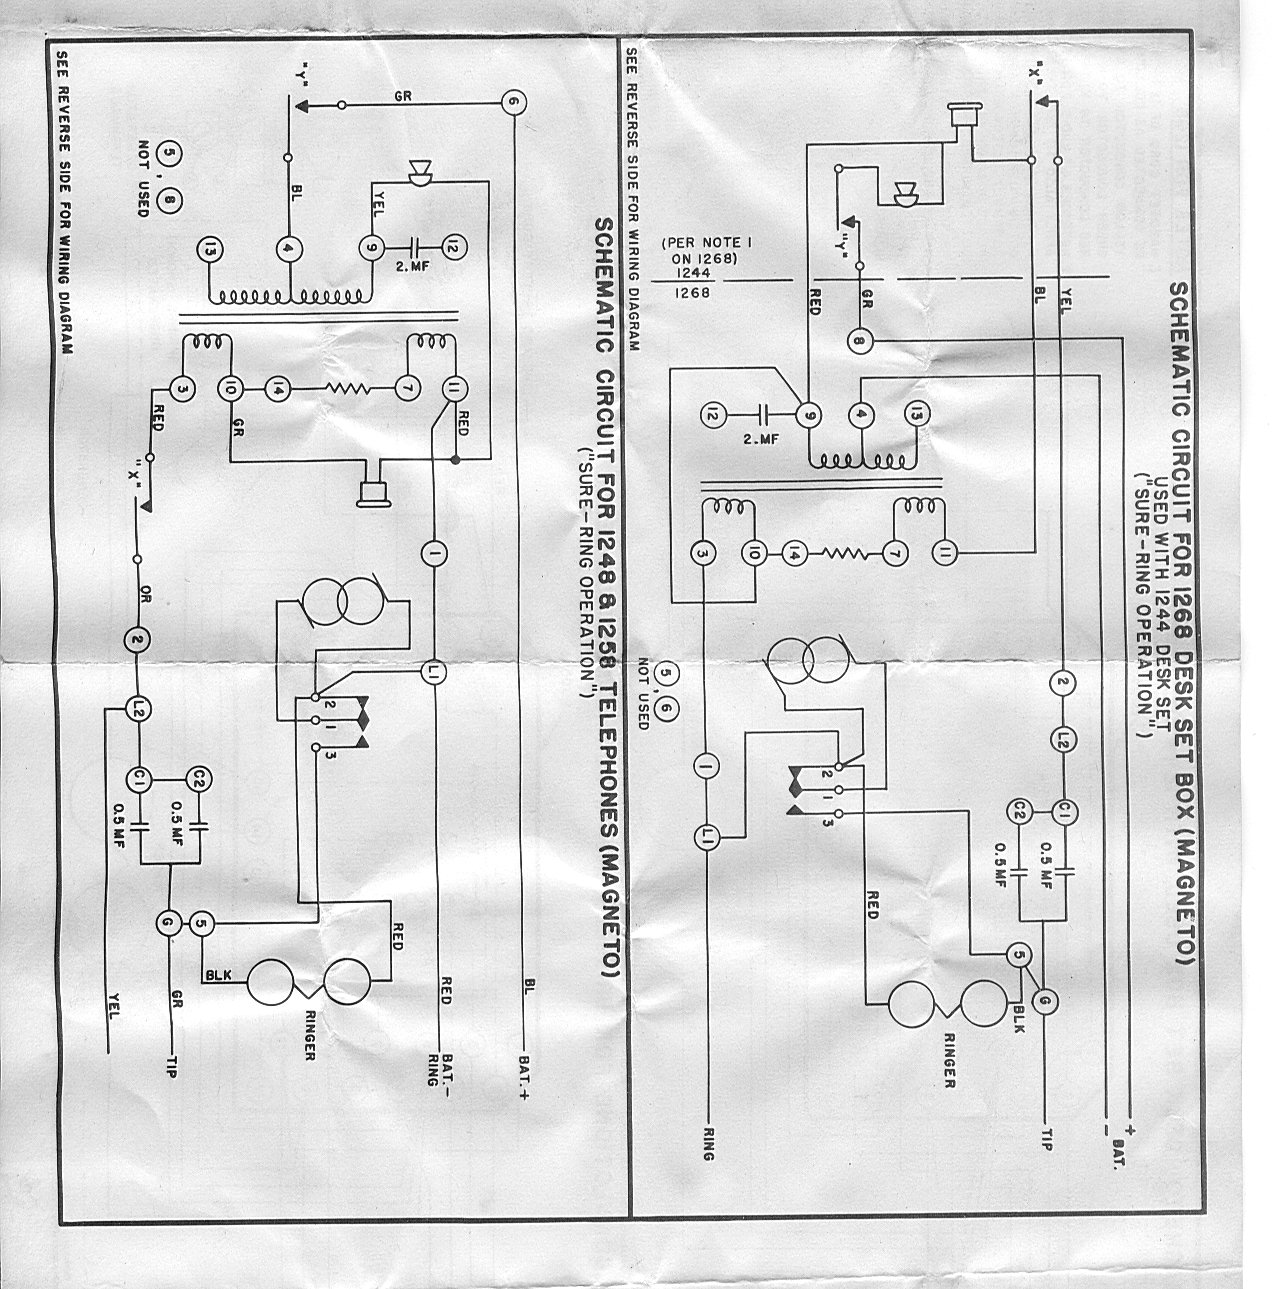 magnetosets2 telephone technical references kellogg telephone wiring diagram at crackthecode.co